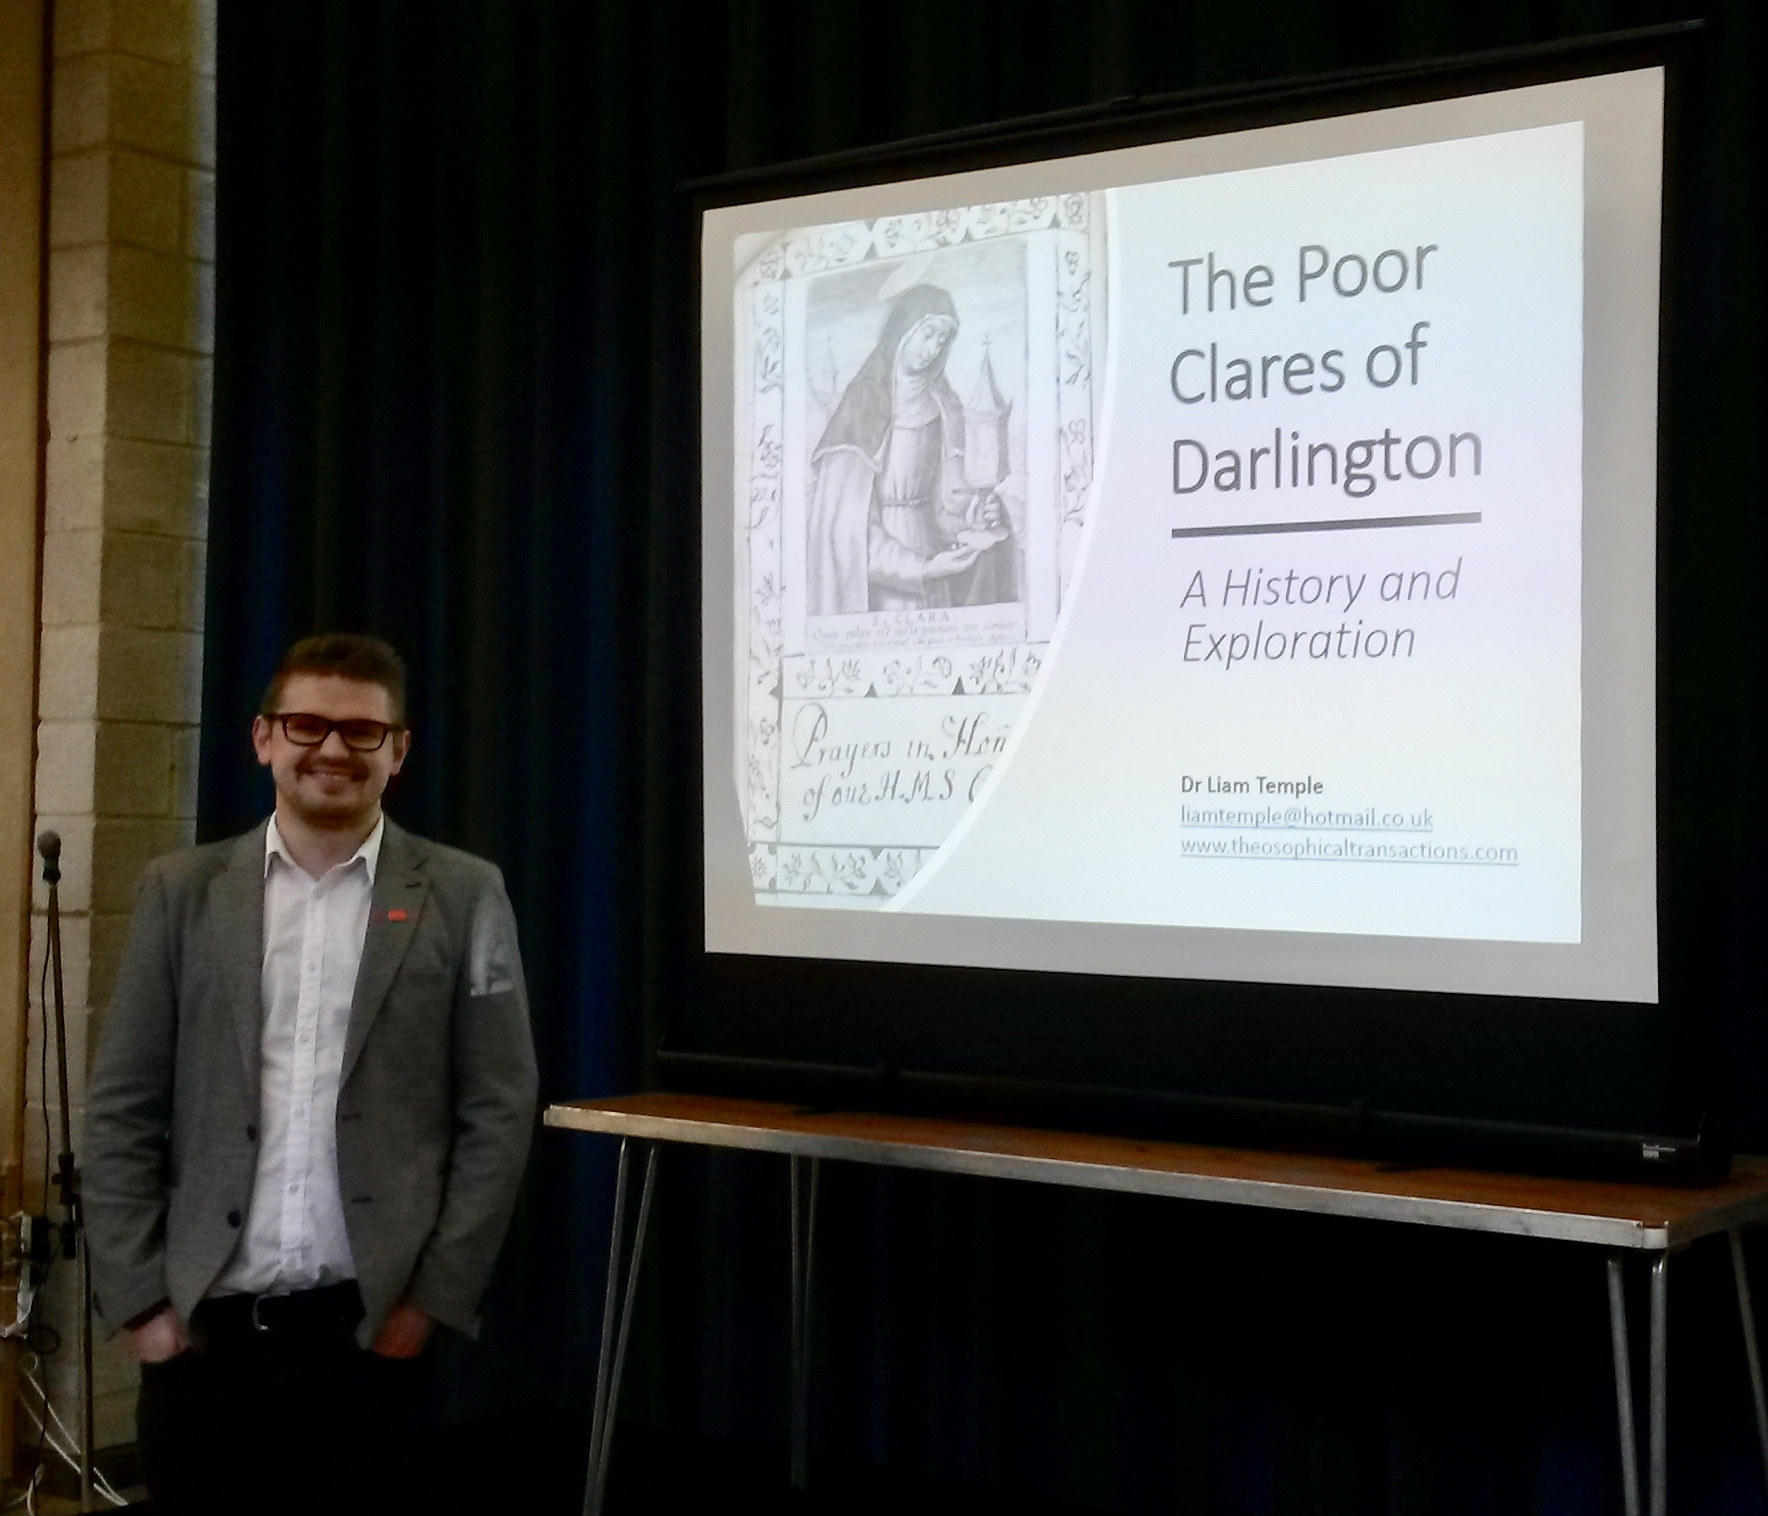 Dr Liam Temple spoke to an audience of 100 about his research into documents left with Durham University Library by the Poor Clares of Darlington